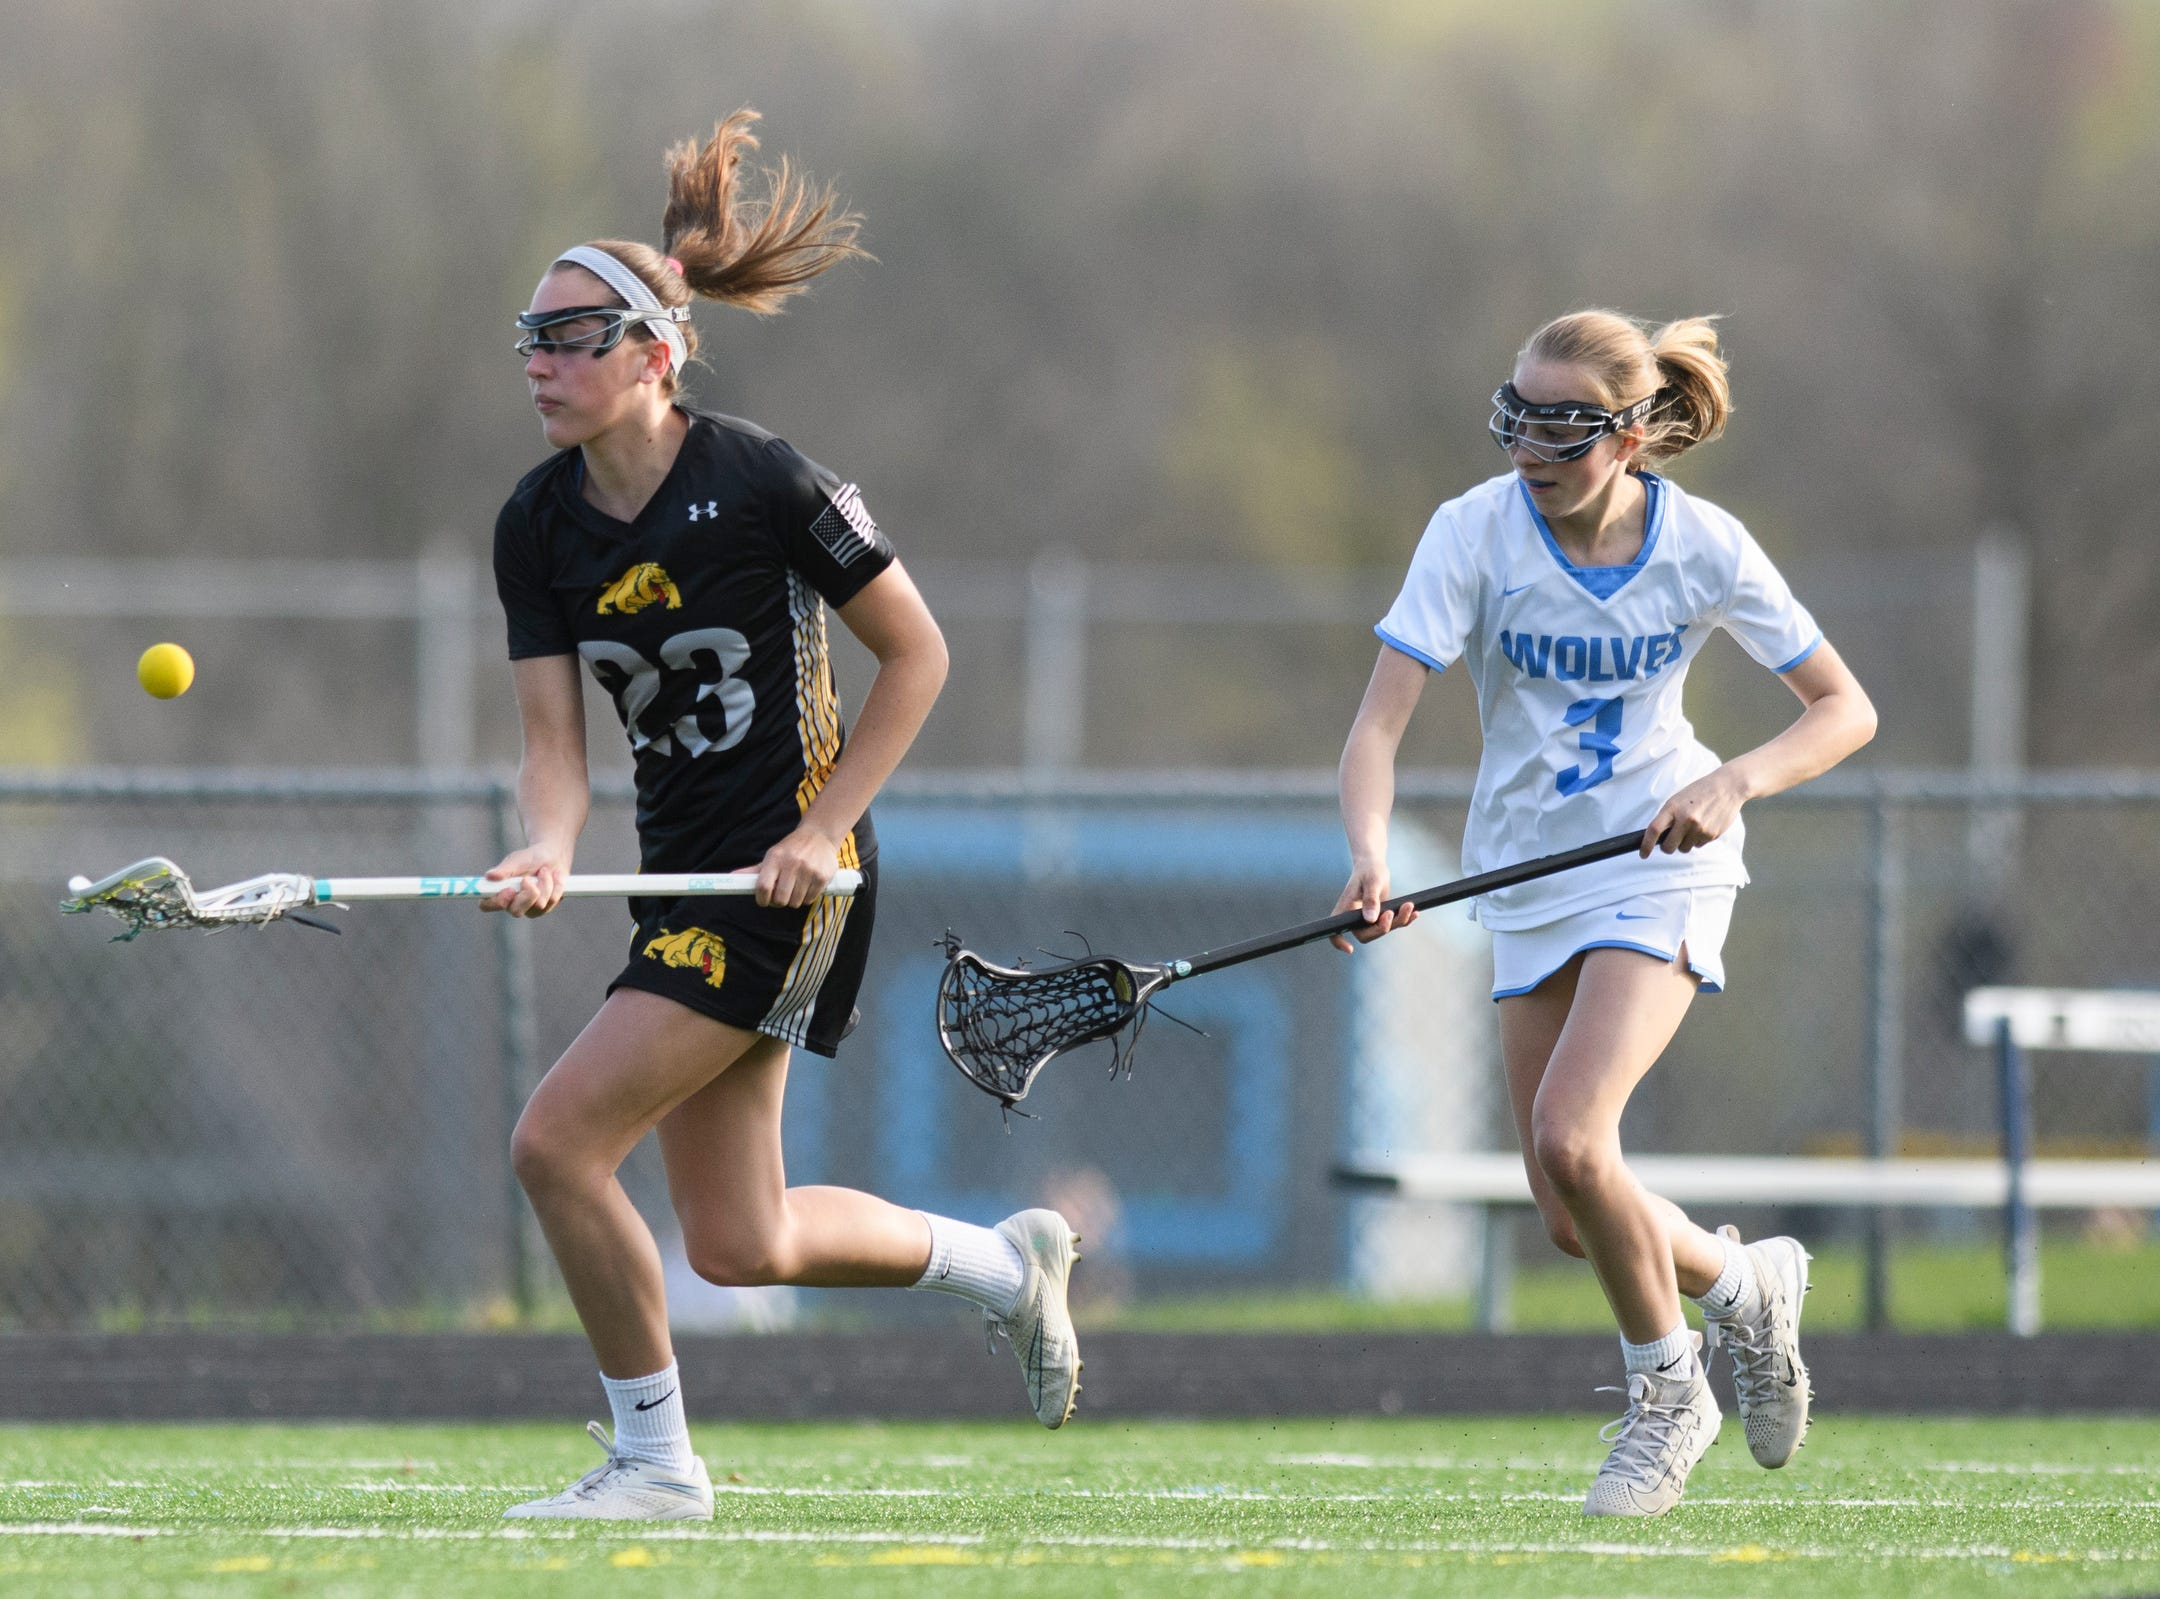 Burr and Burton's Sydney Goldfarb (23) plays the ball; as she runs down the field past South Burlington's Lindsey Booth (3) during the high school girls lacrosse game between Burr and Burton Bulldogs and the South Burlington Wolves at Munson Field on Monday afternoon May 6, 2019 in South Burlington, Vermont.